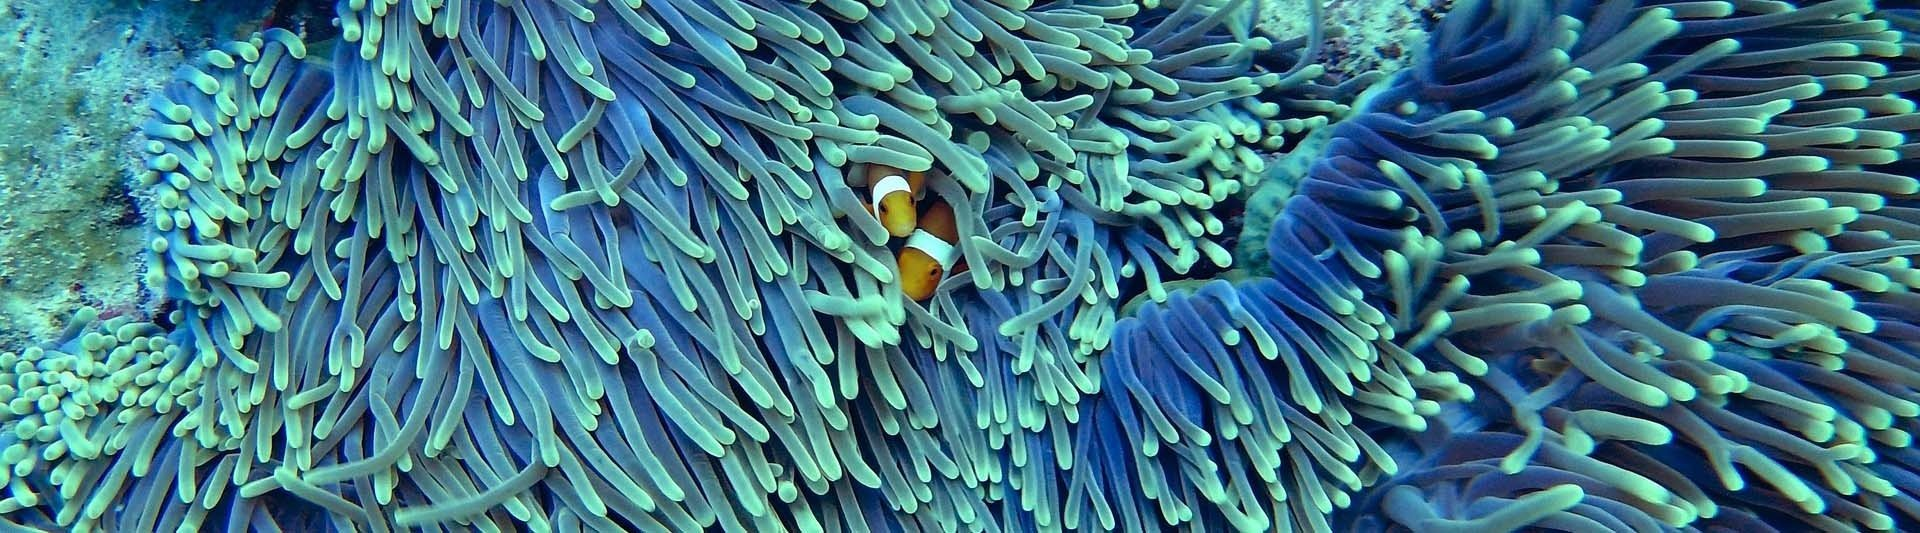 coral and clown fish